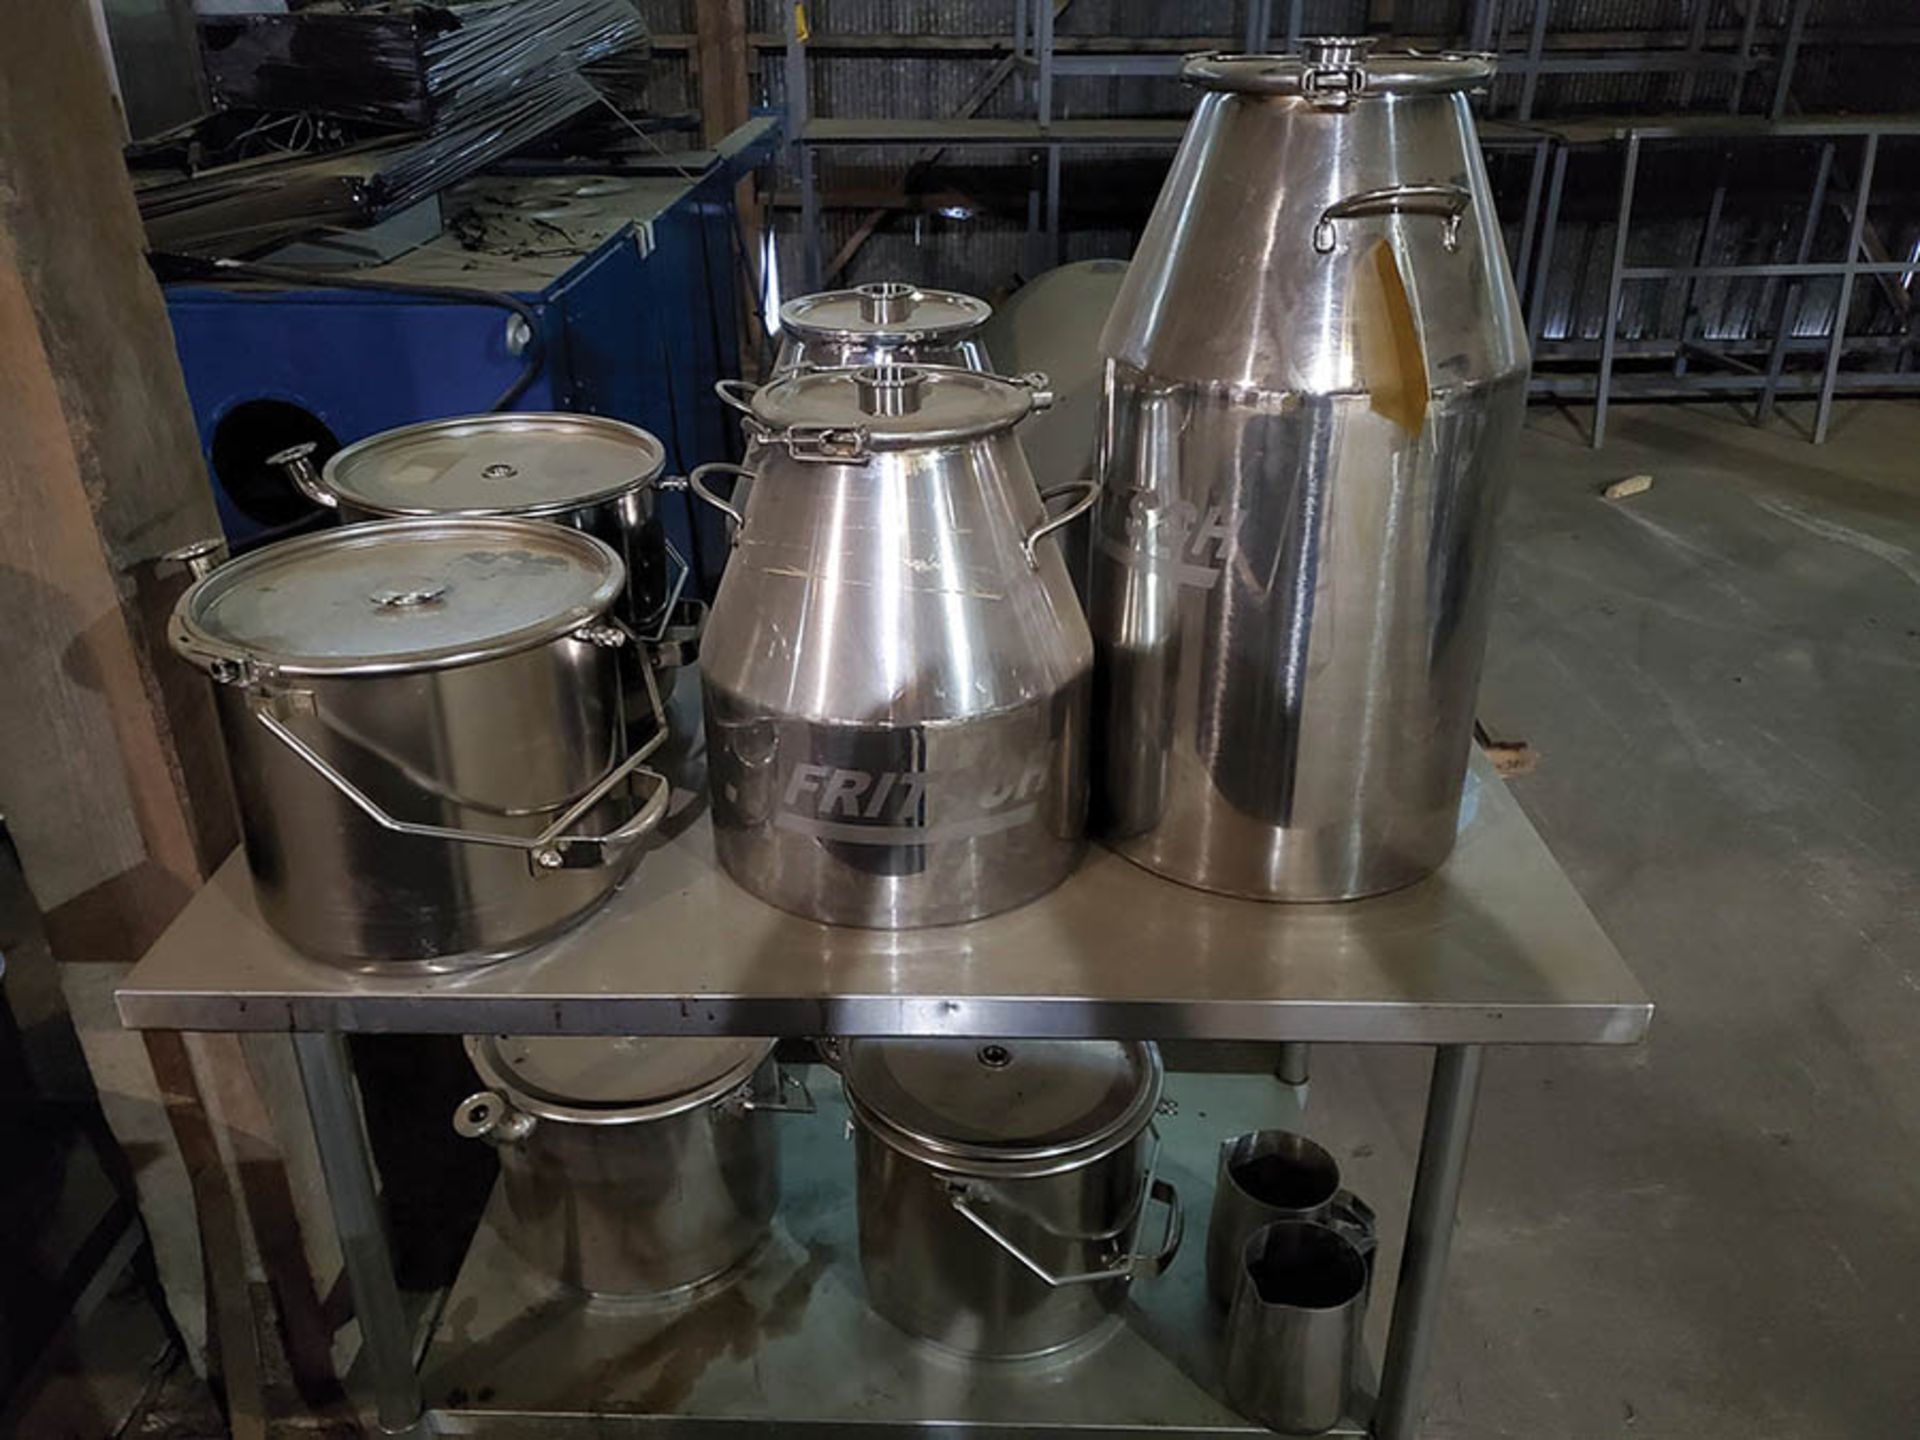 STAINLESS STEEL TABLE AND CART WITH STAINLESS STEEL FRITSCH CONE POTS, PRESSURE POTS, CLAMP RINGS, - Image 2 of 11